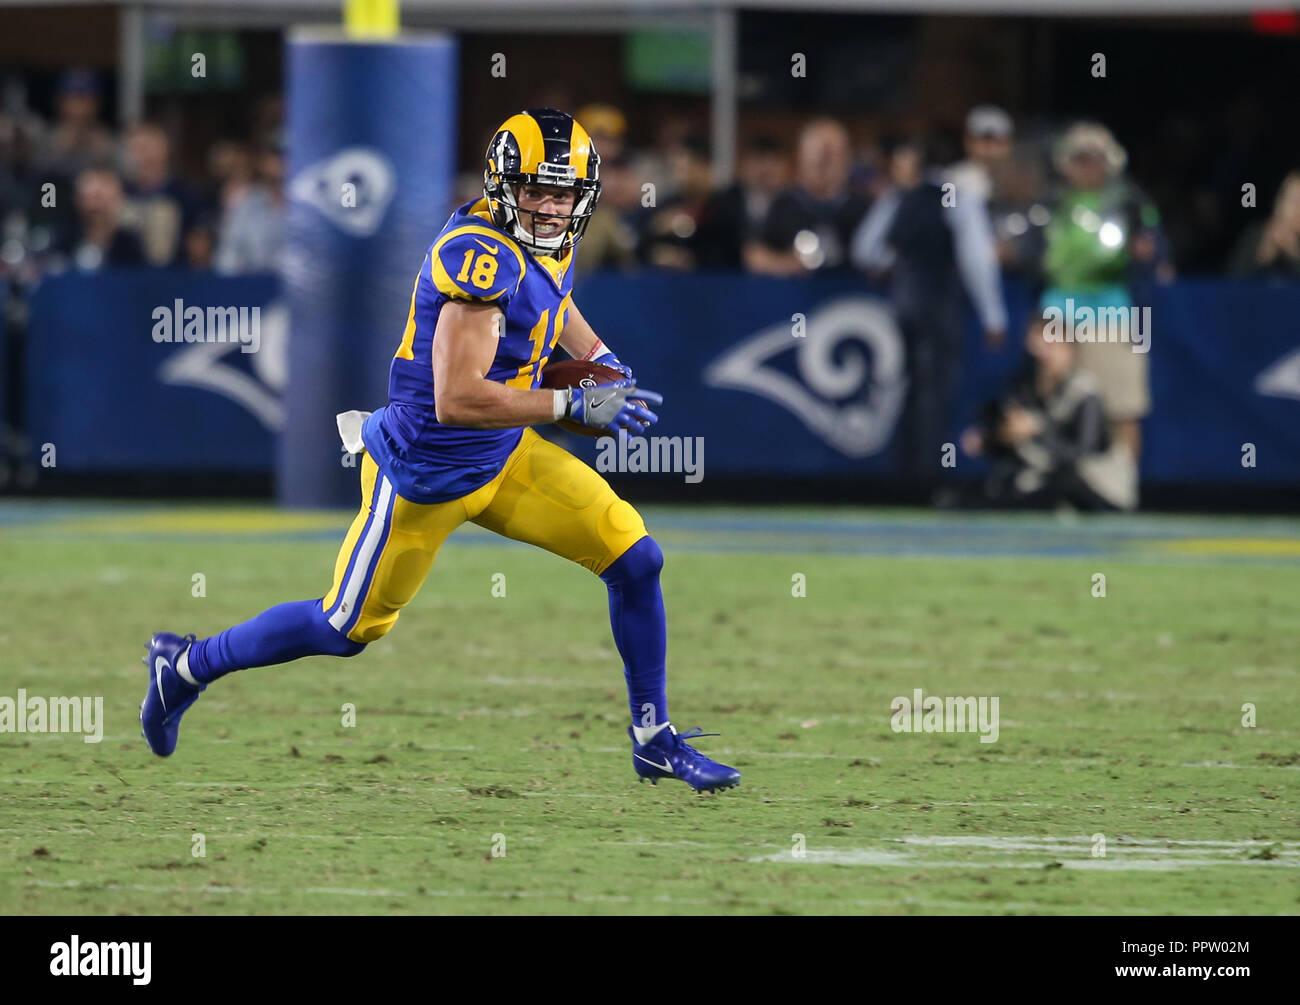 Los Angeles Ca Usa 27th Sep 2018 Los Angeles Rams Wide Receiver Cooper Kupp 18 During The Nfl Minnesota Vikings Vs Los Angeles Rams At The Los Angeles Memorial Coliseum In Los